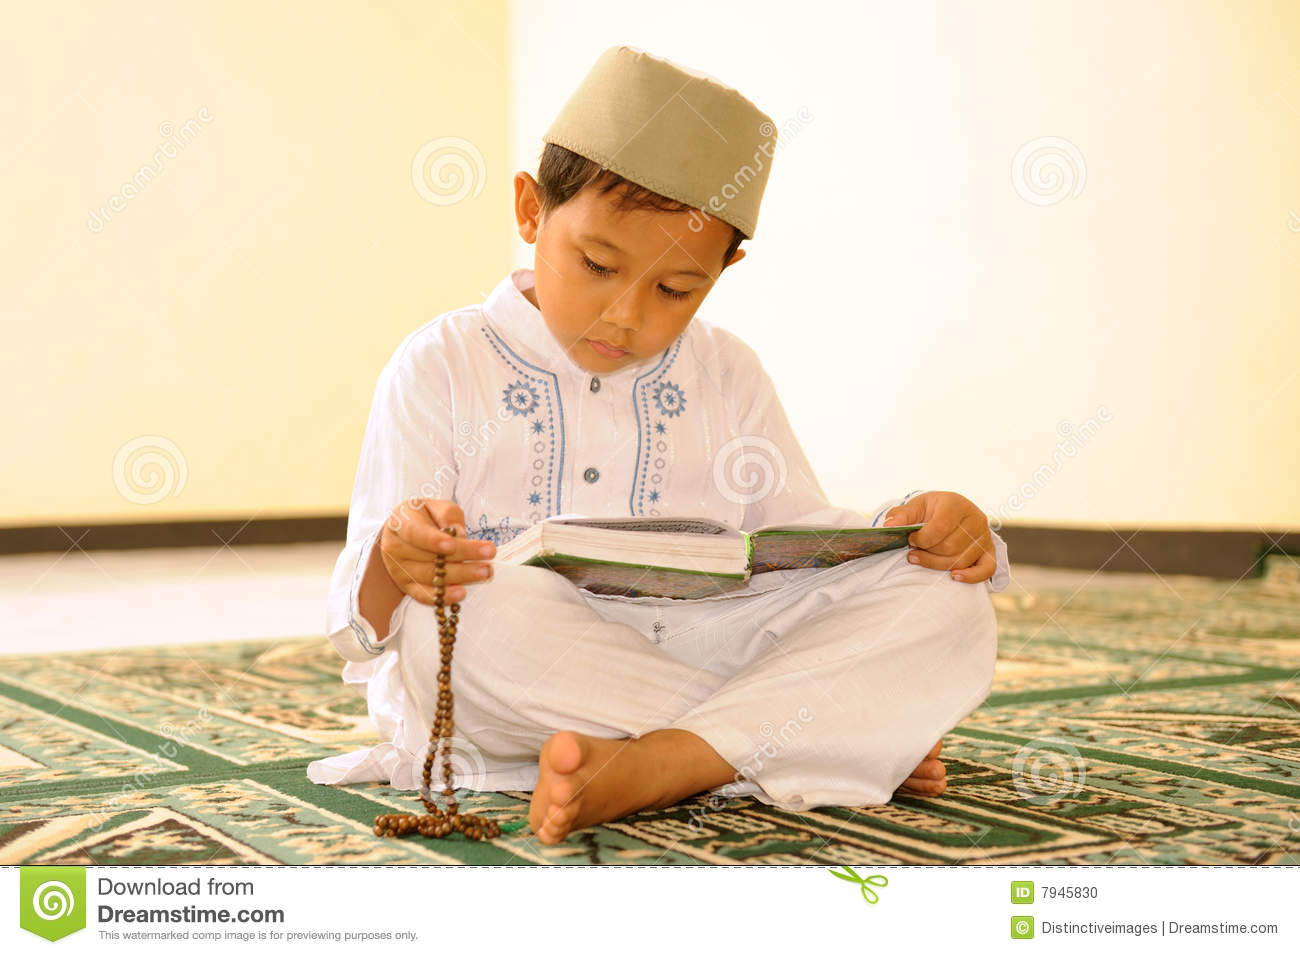 Islam, Child Reading Qur'an Stock Photo - Image: 7945830 Children Reading Quran Beautifully